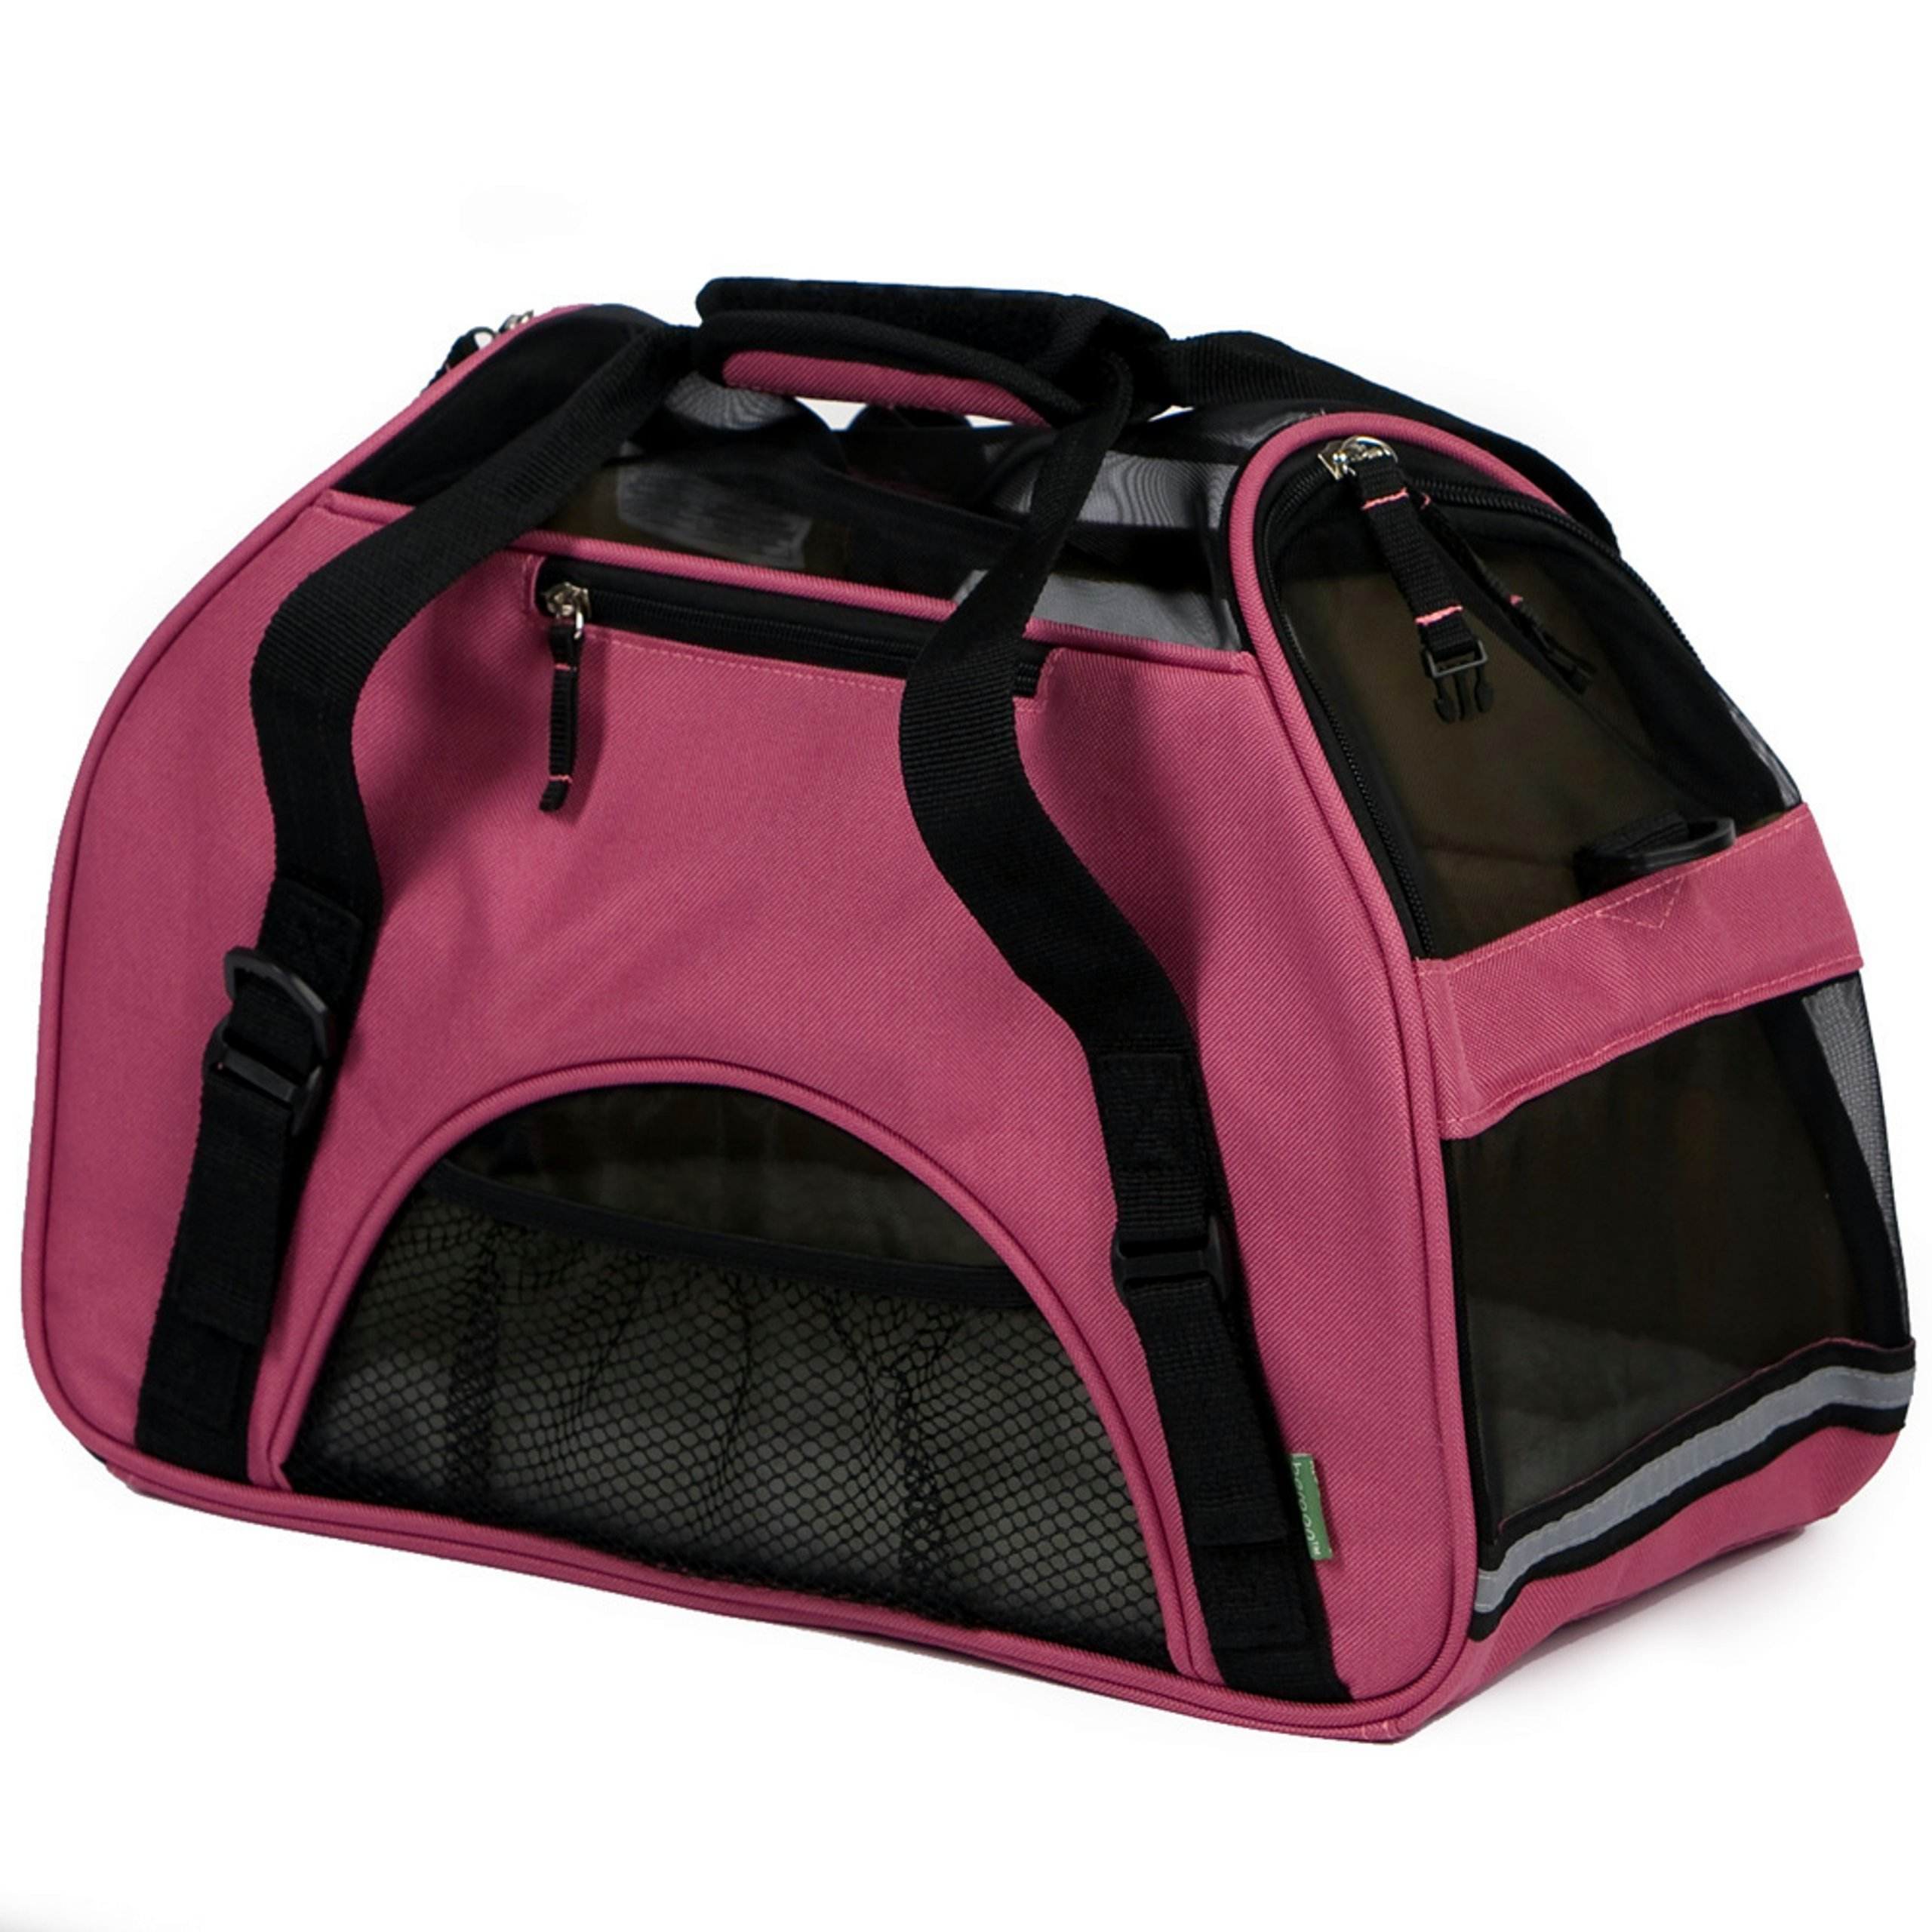 Bergan Comfort Carrier, Large, Rose Wine